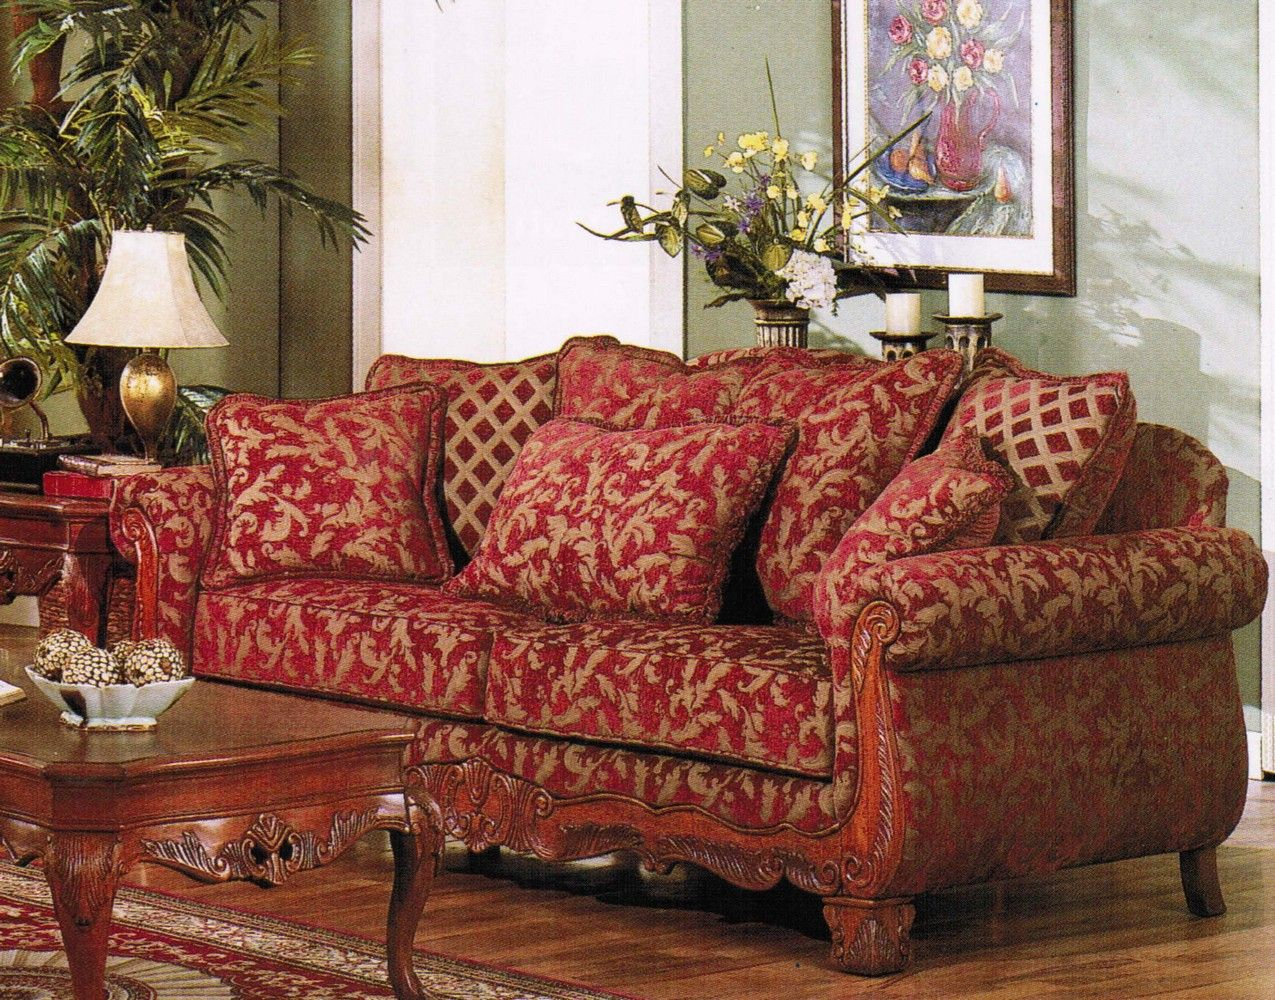 Visiondecor Com Printed Sofa Red Sofa Living Room Living Room Sofa